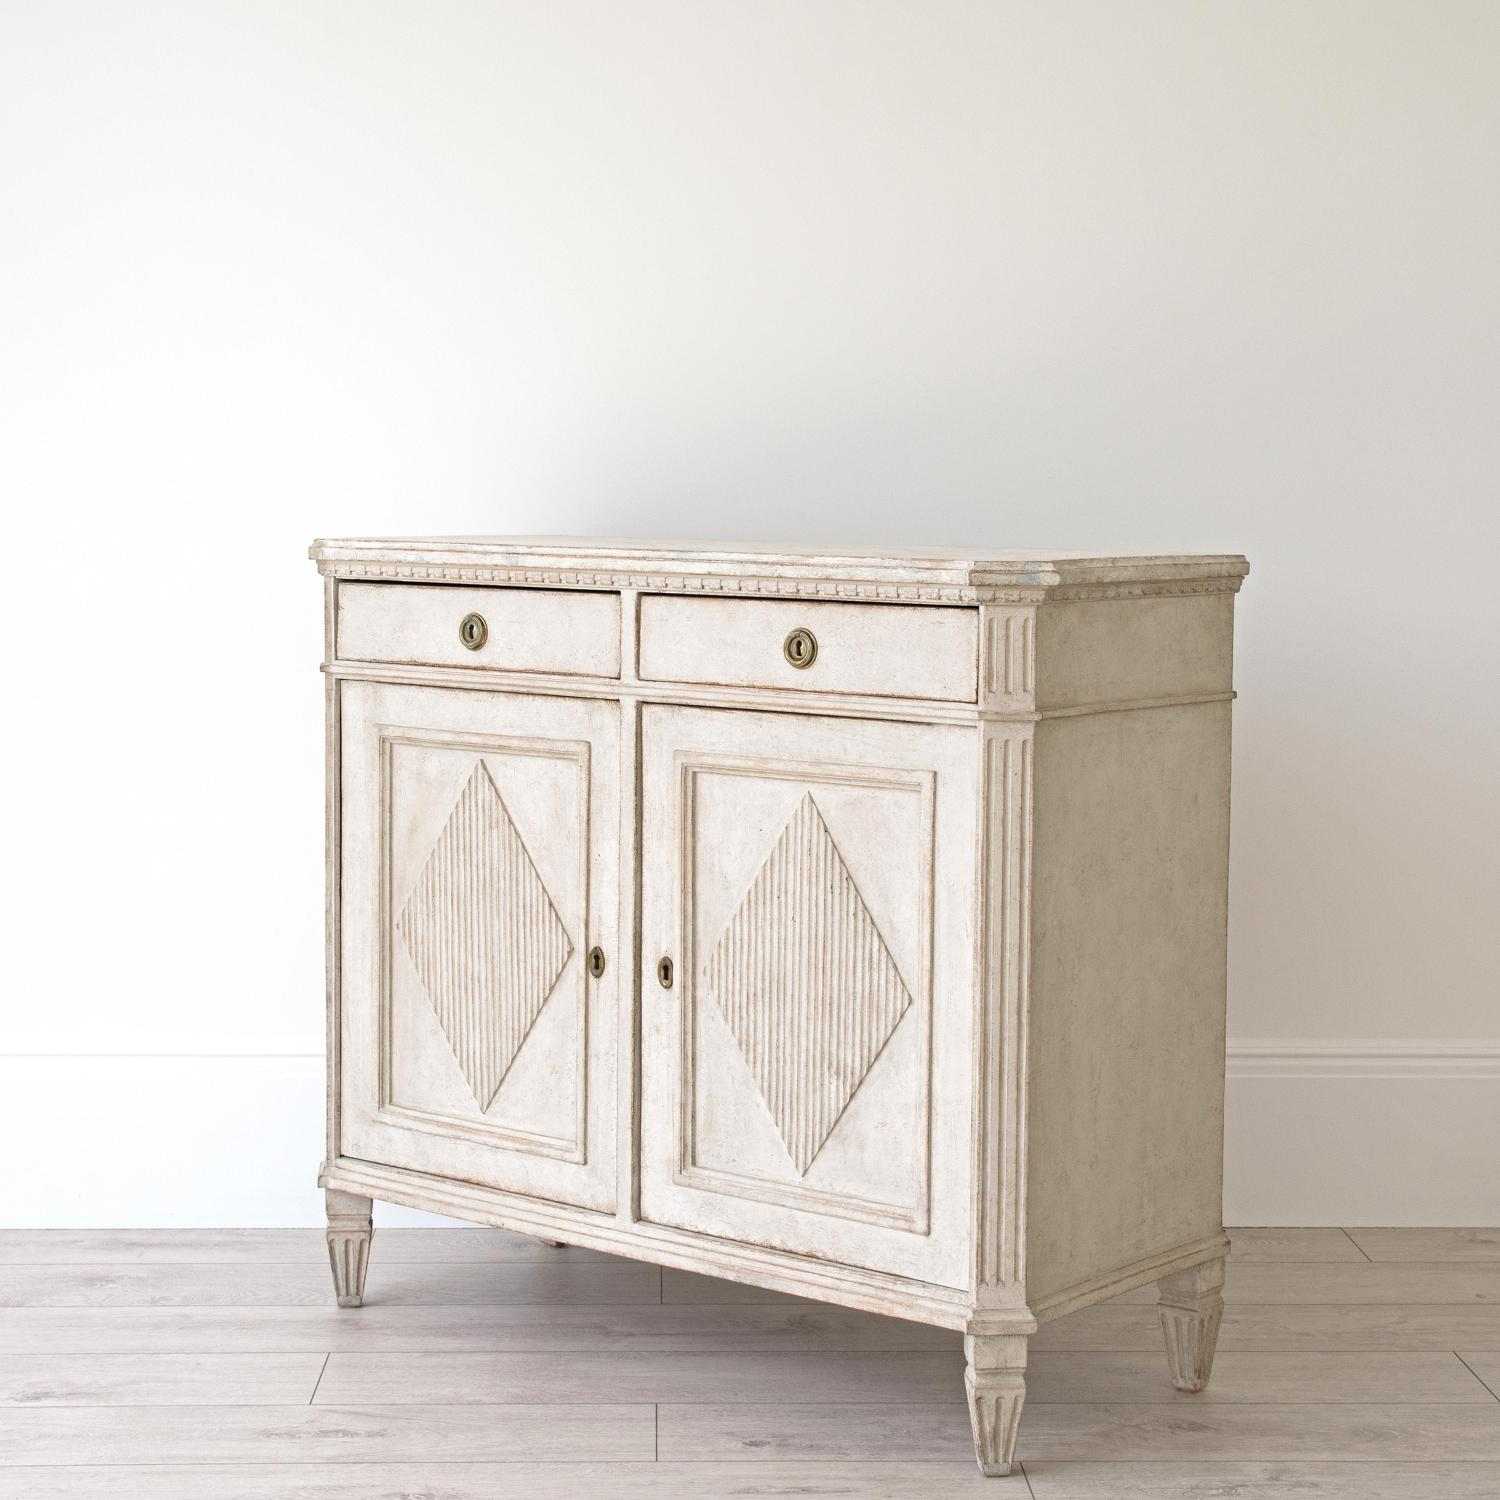 RICHLY CARVED SWEDISH GUSTAVIAN BUFFET